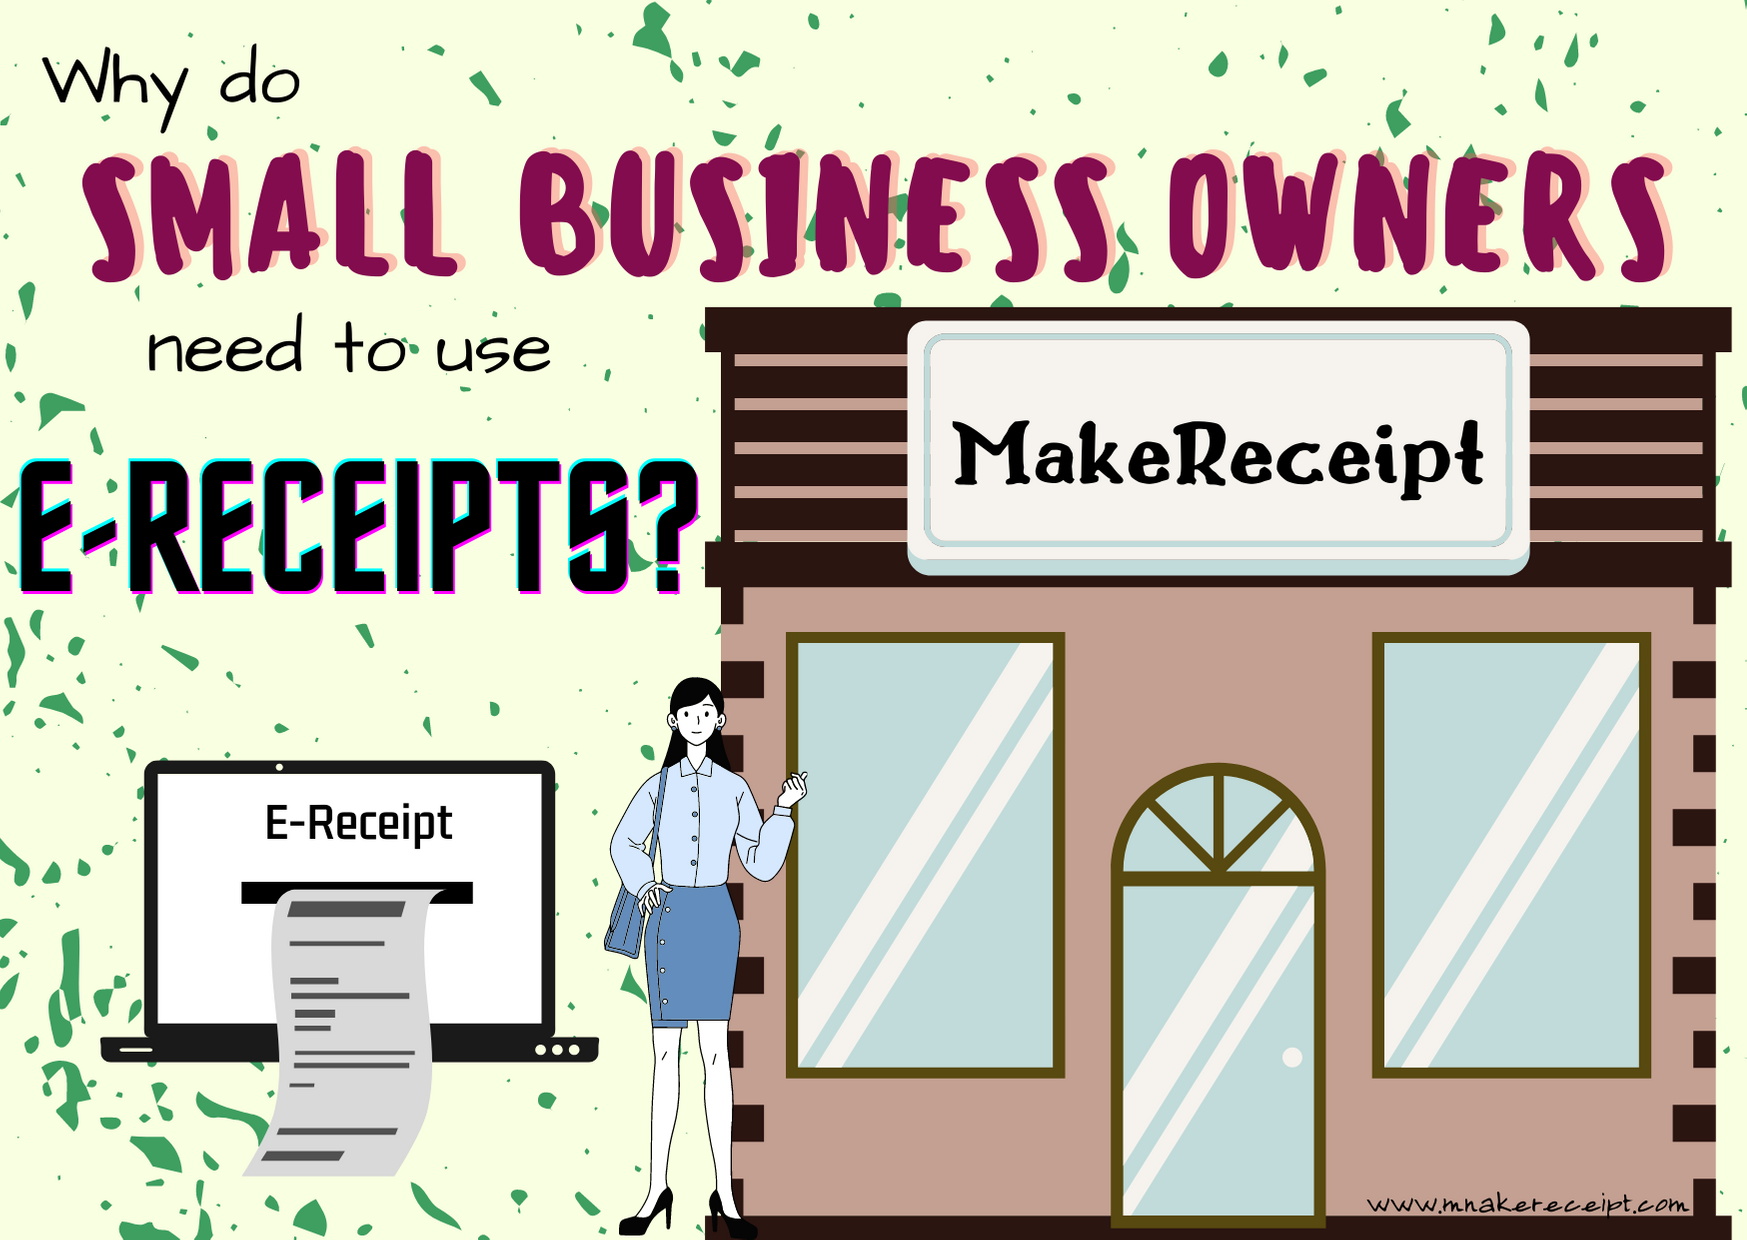 WHY DO SMALL BUSINESS OWNERS NEED TO USE E-RECEIPTS?